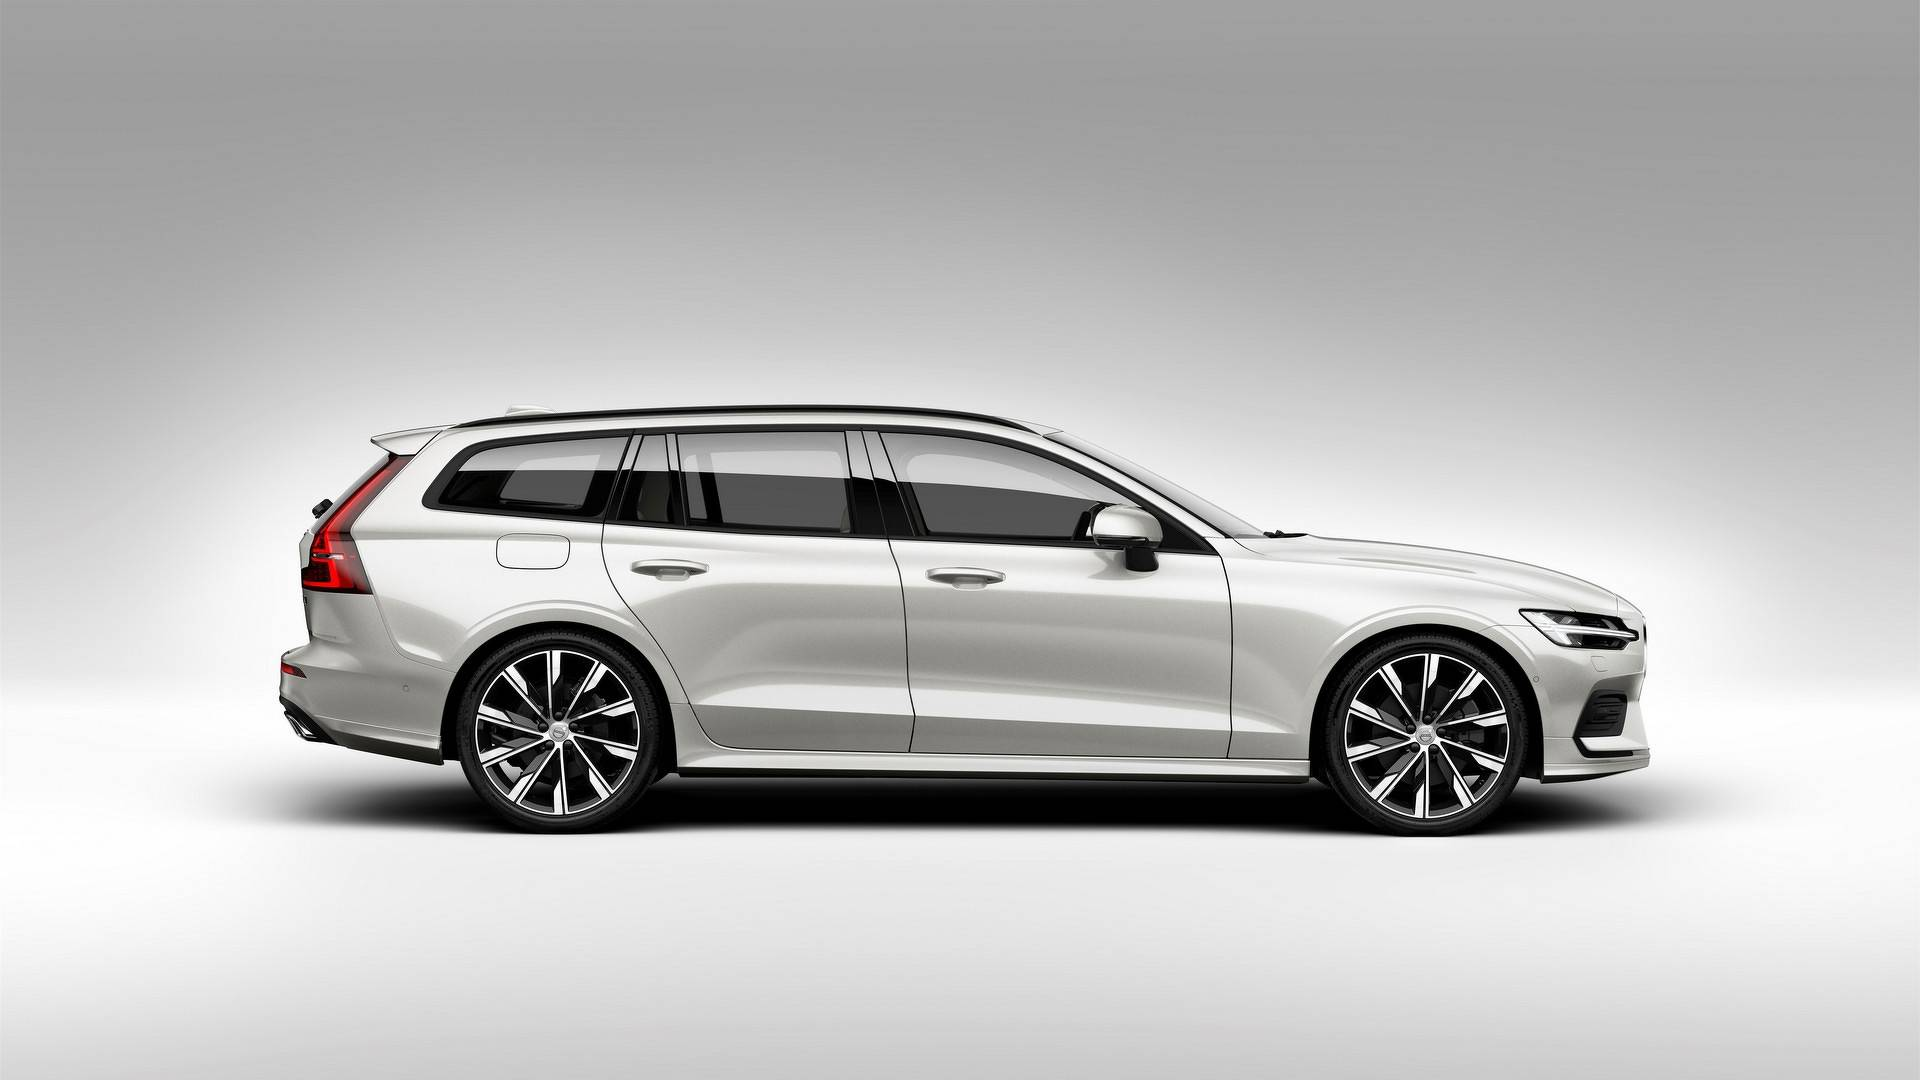 Family Resemblance Compare The Volvo V60 And V90 Side By Side